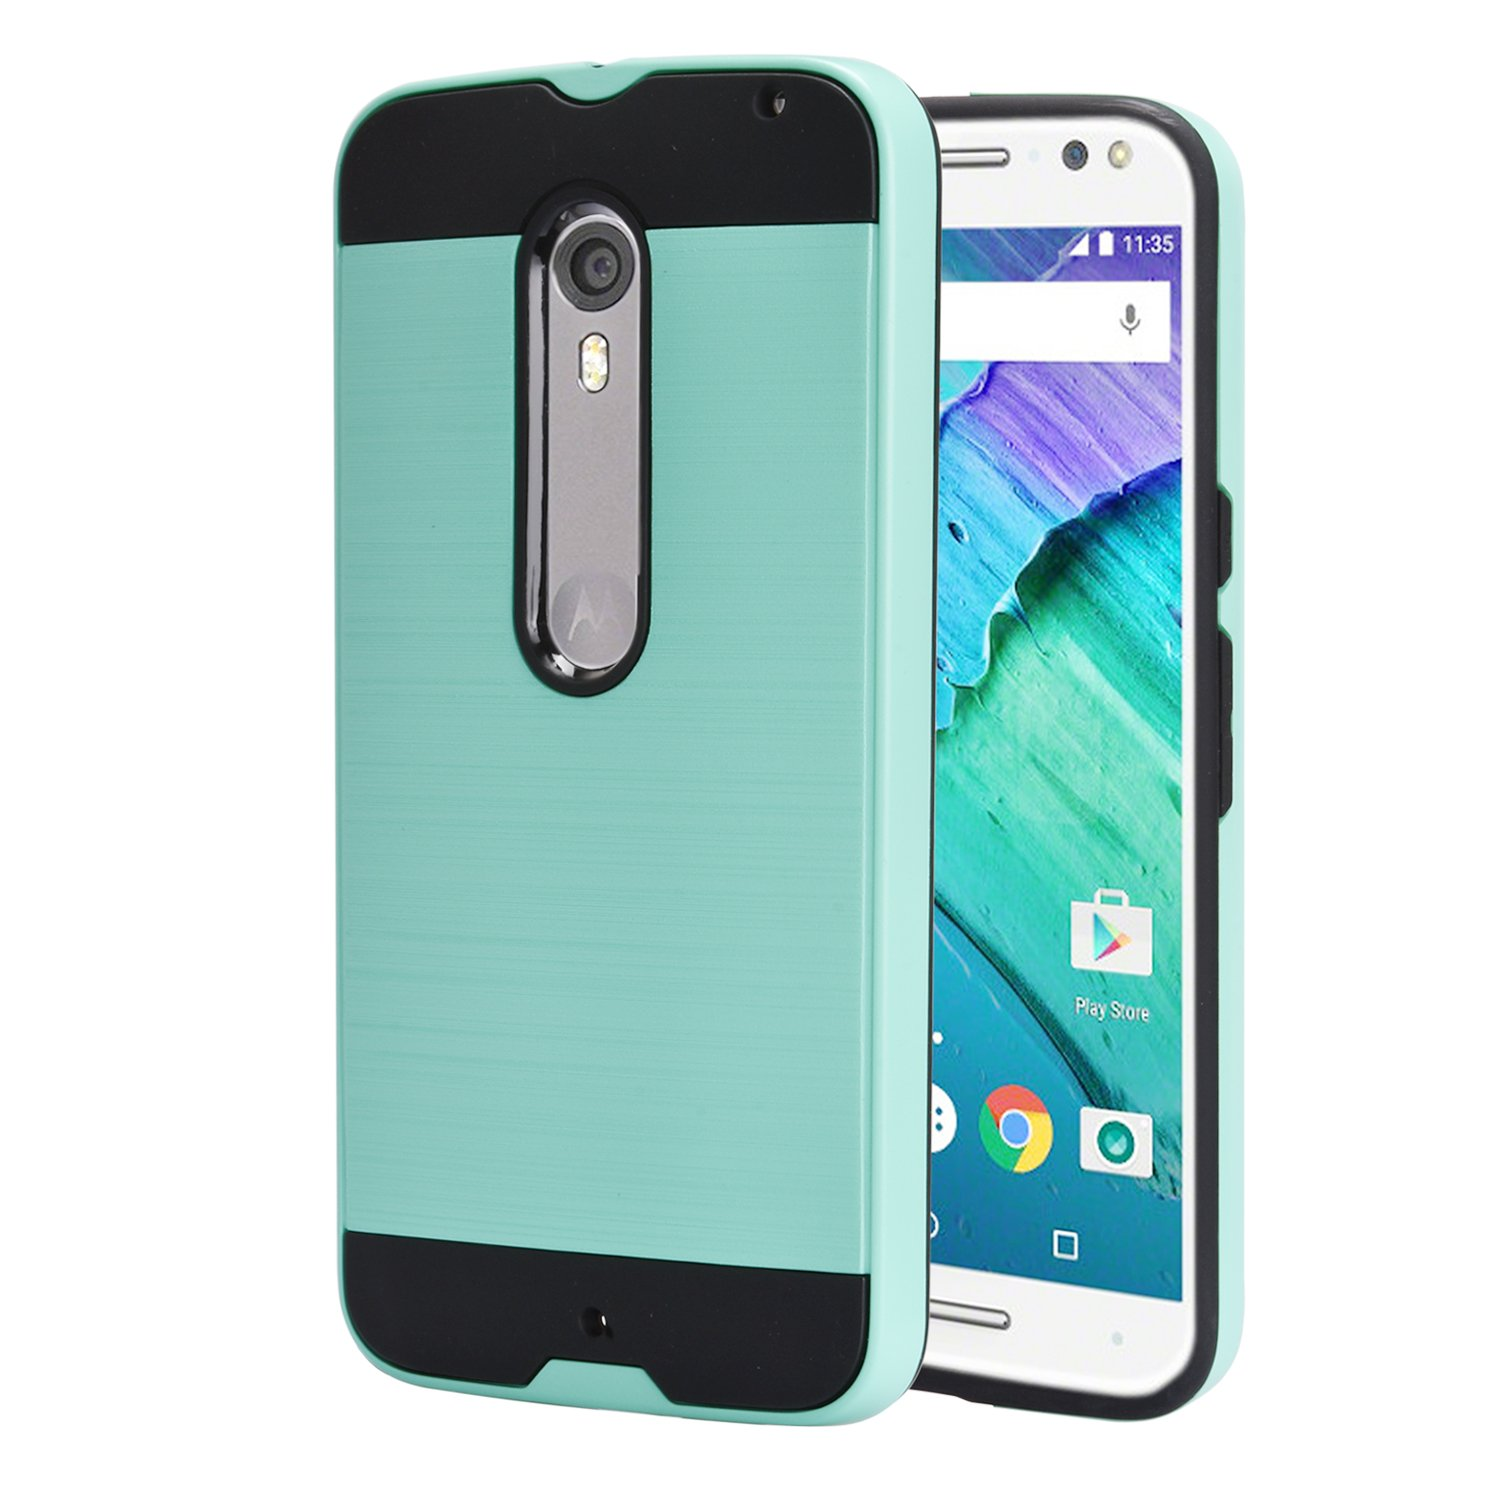 huge discount 2dbad 0de00 Moto X Pure Edition / Moto X Style / XT1570 Case With Phone Stand,Ymhxcy  [Metal Brushed Texture] Hybrid Dual Layer Full-Body Shockproof Protective  ...